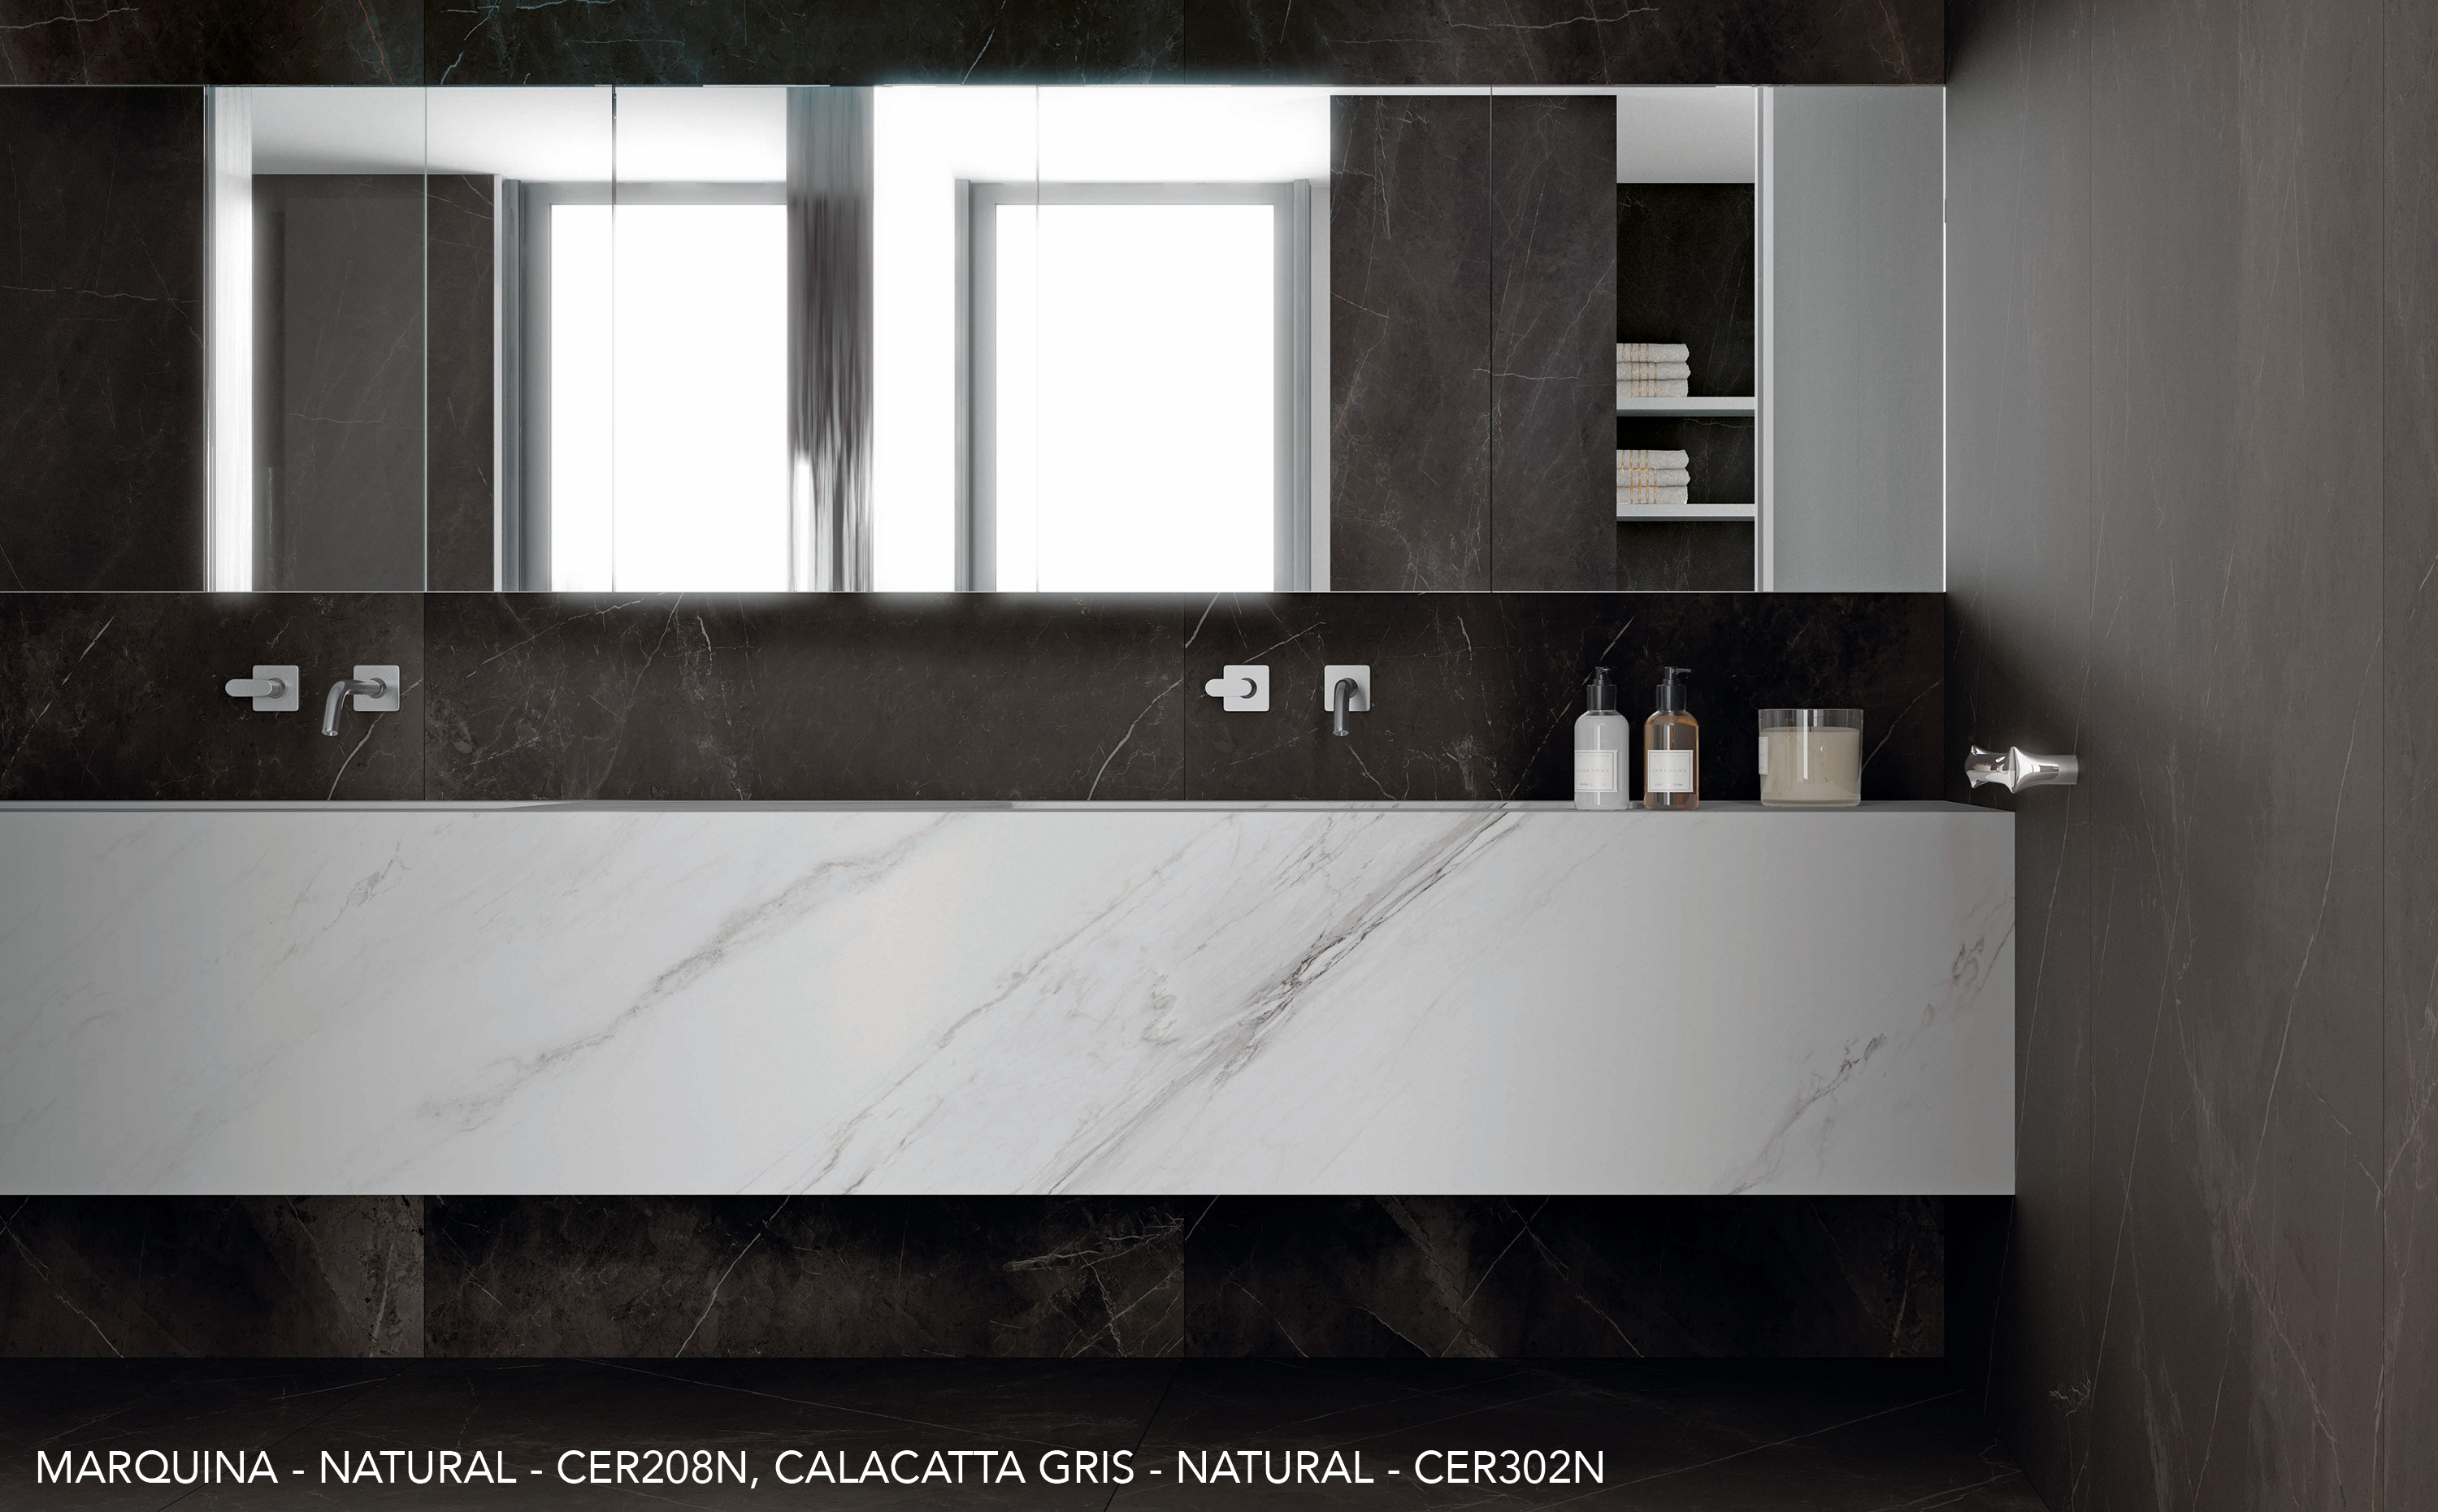 Marquina and calacatta Gris bathroom